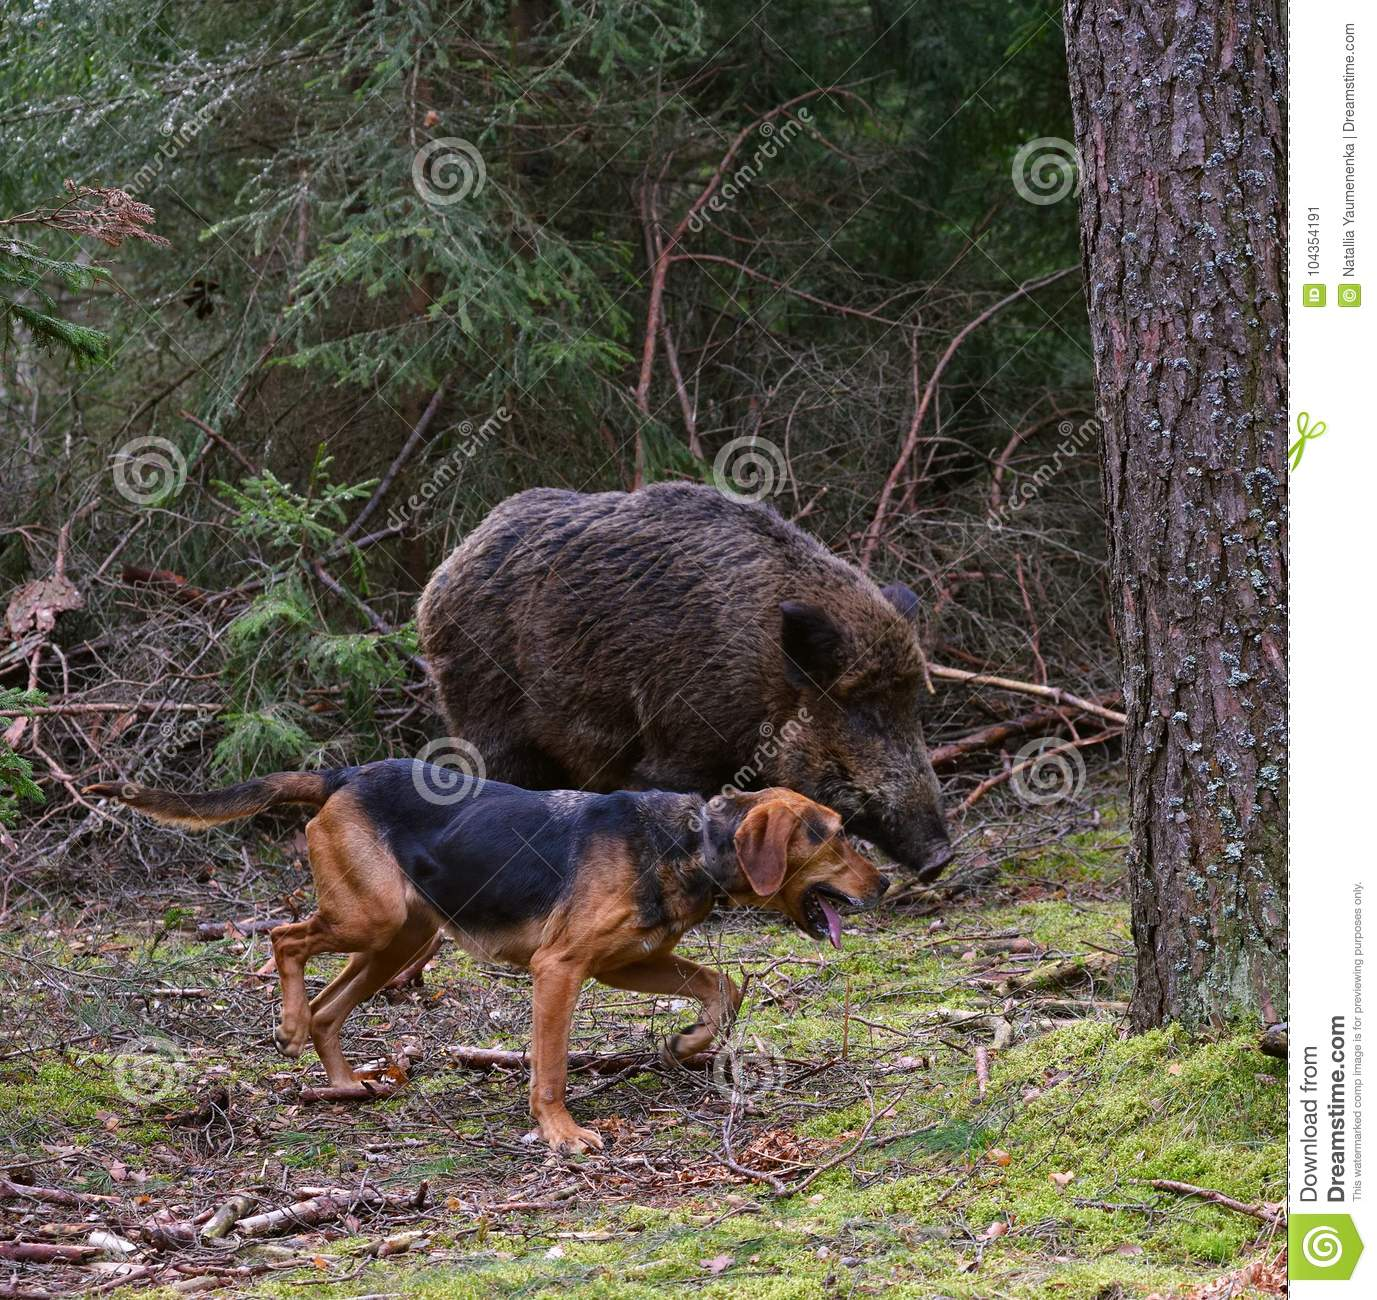 Hunting on wildboar stock image  Image of grass, outdoors